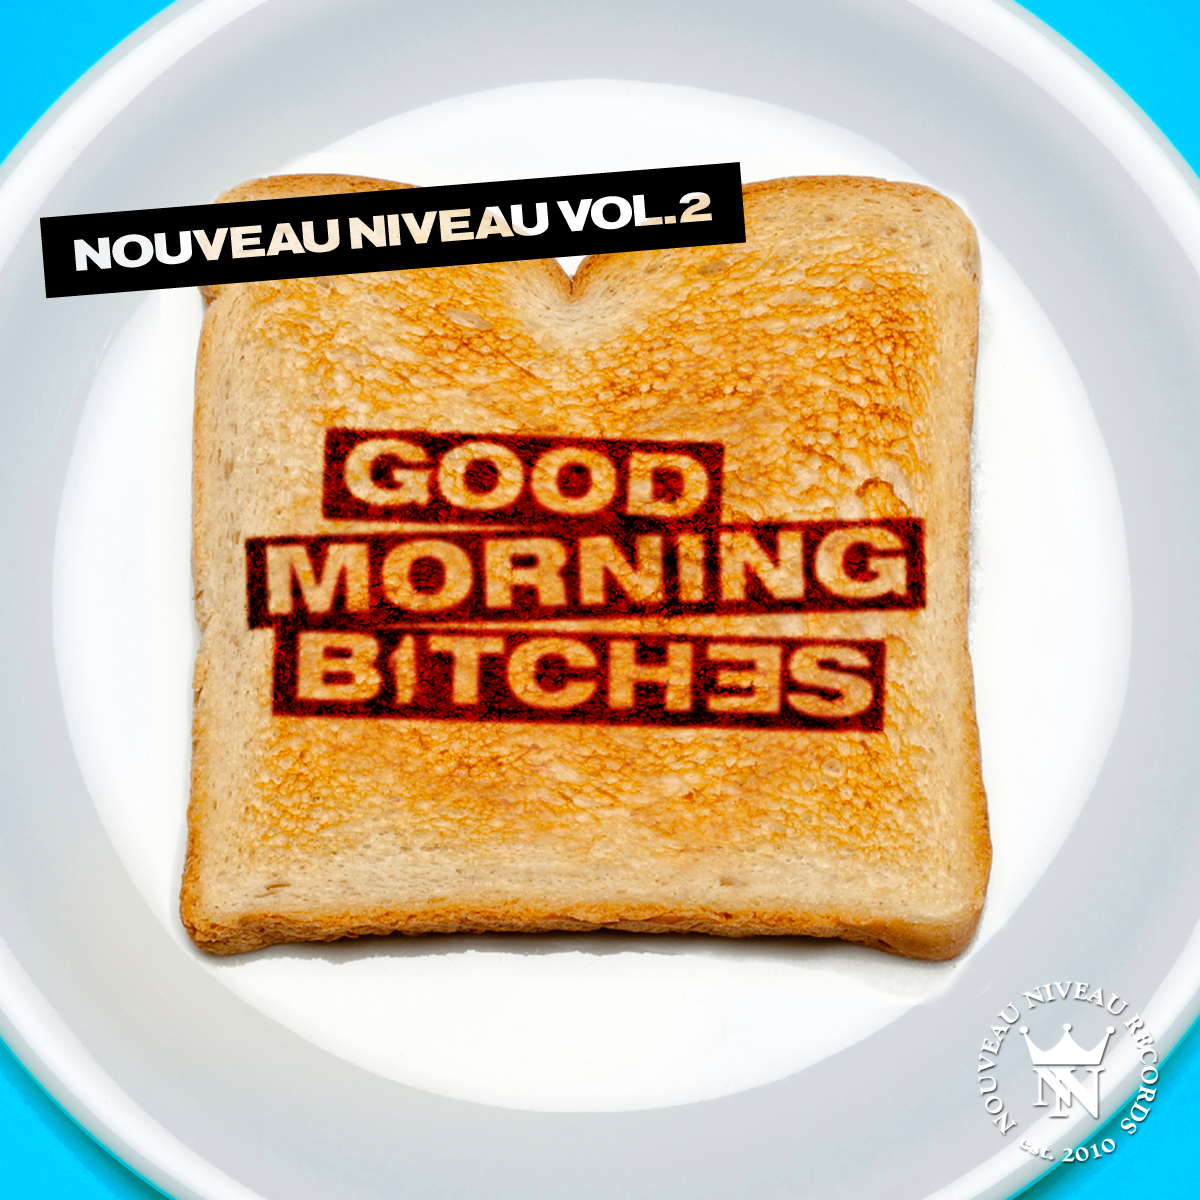 "Tom Novy präsentiert Nouveau Niveaus zweite Compilation ""Good Morning Bitches"""